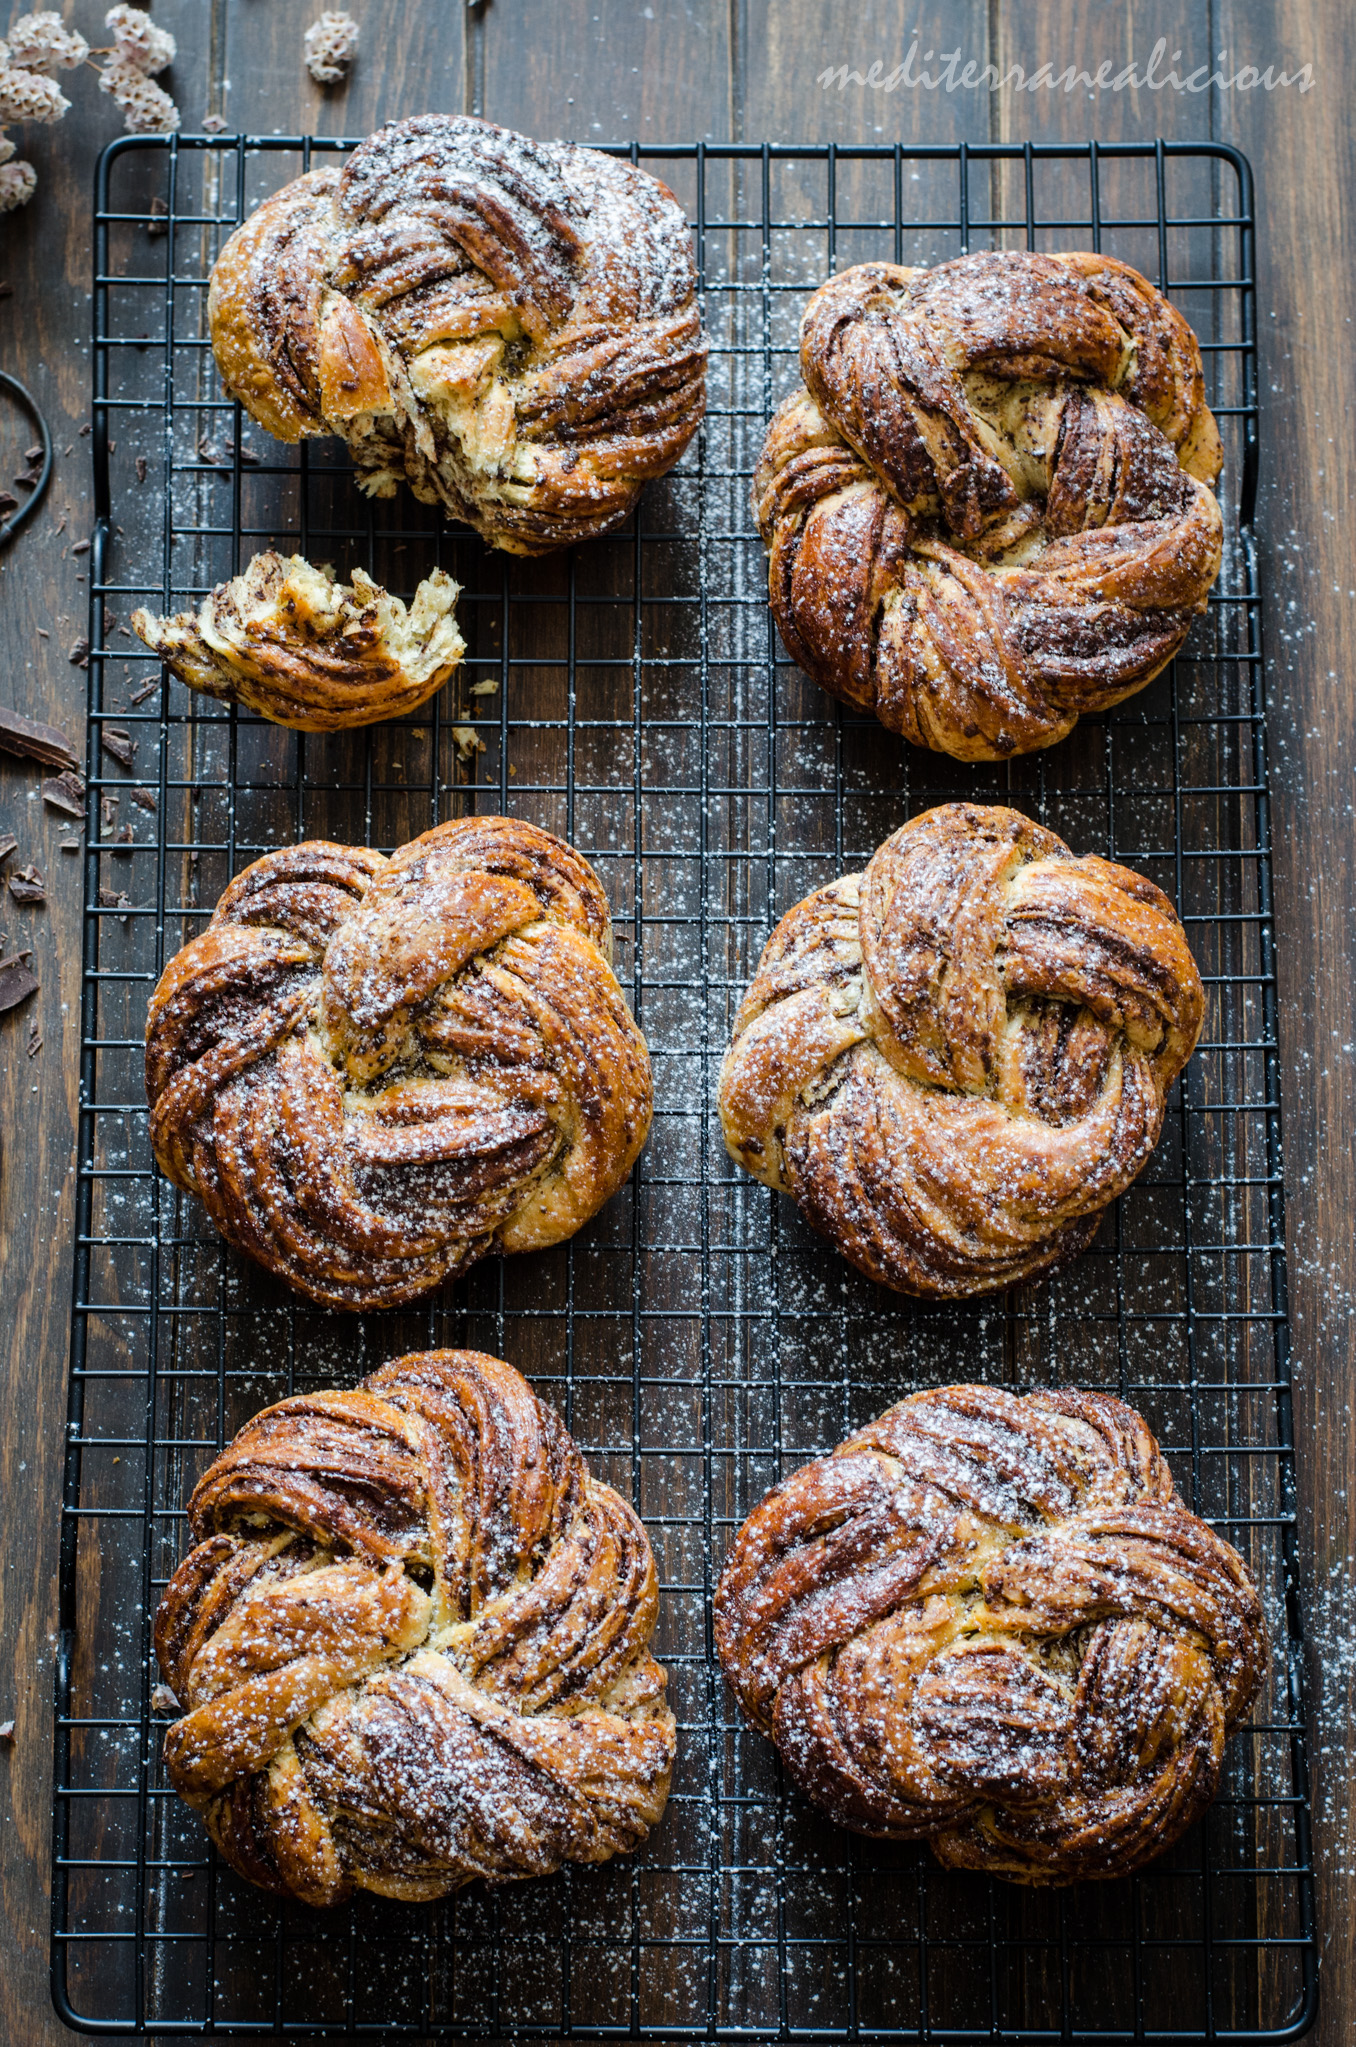 Braided Chocolate Brioche